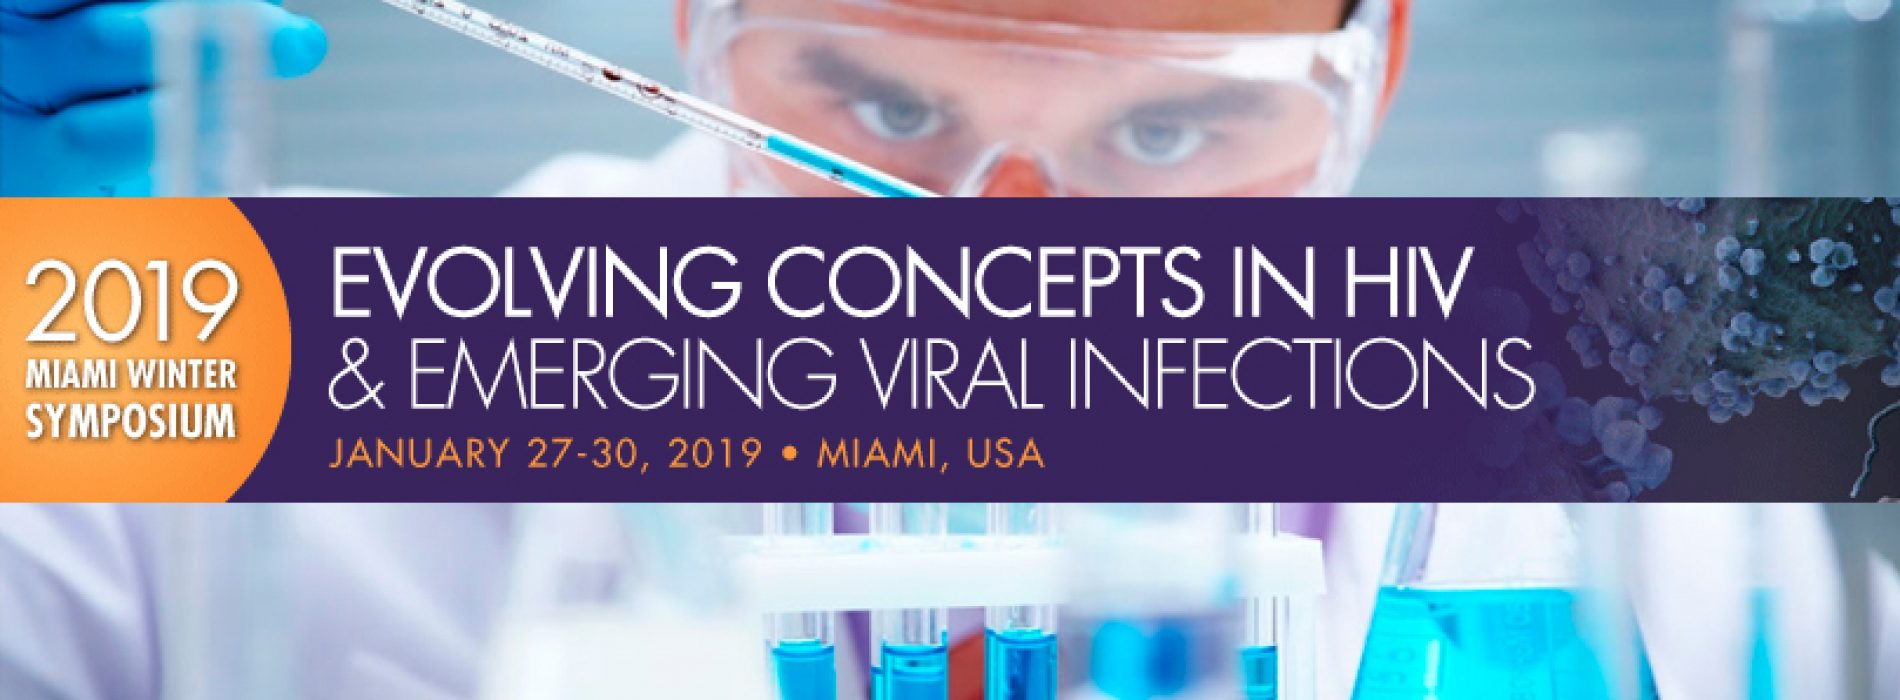 Miami Winter Symposium 2019 Evolving Concepts in HIV and